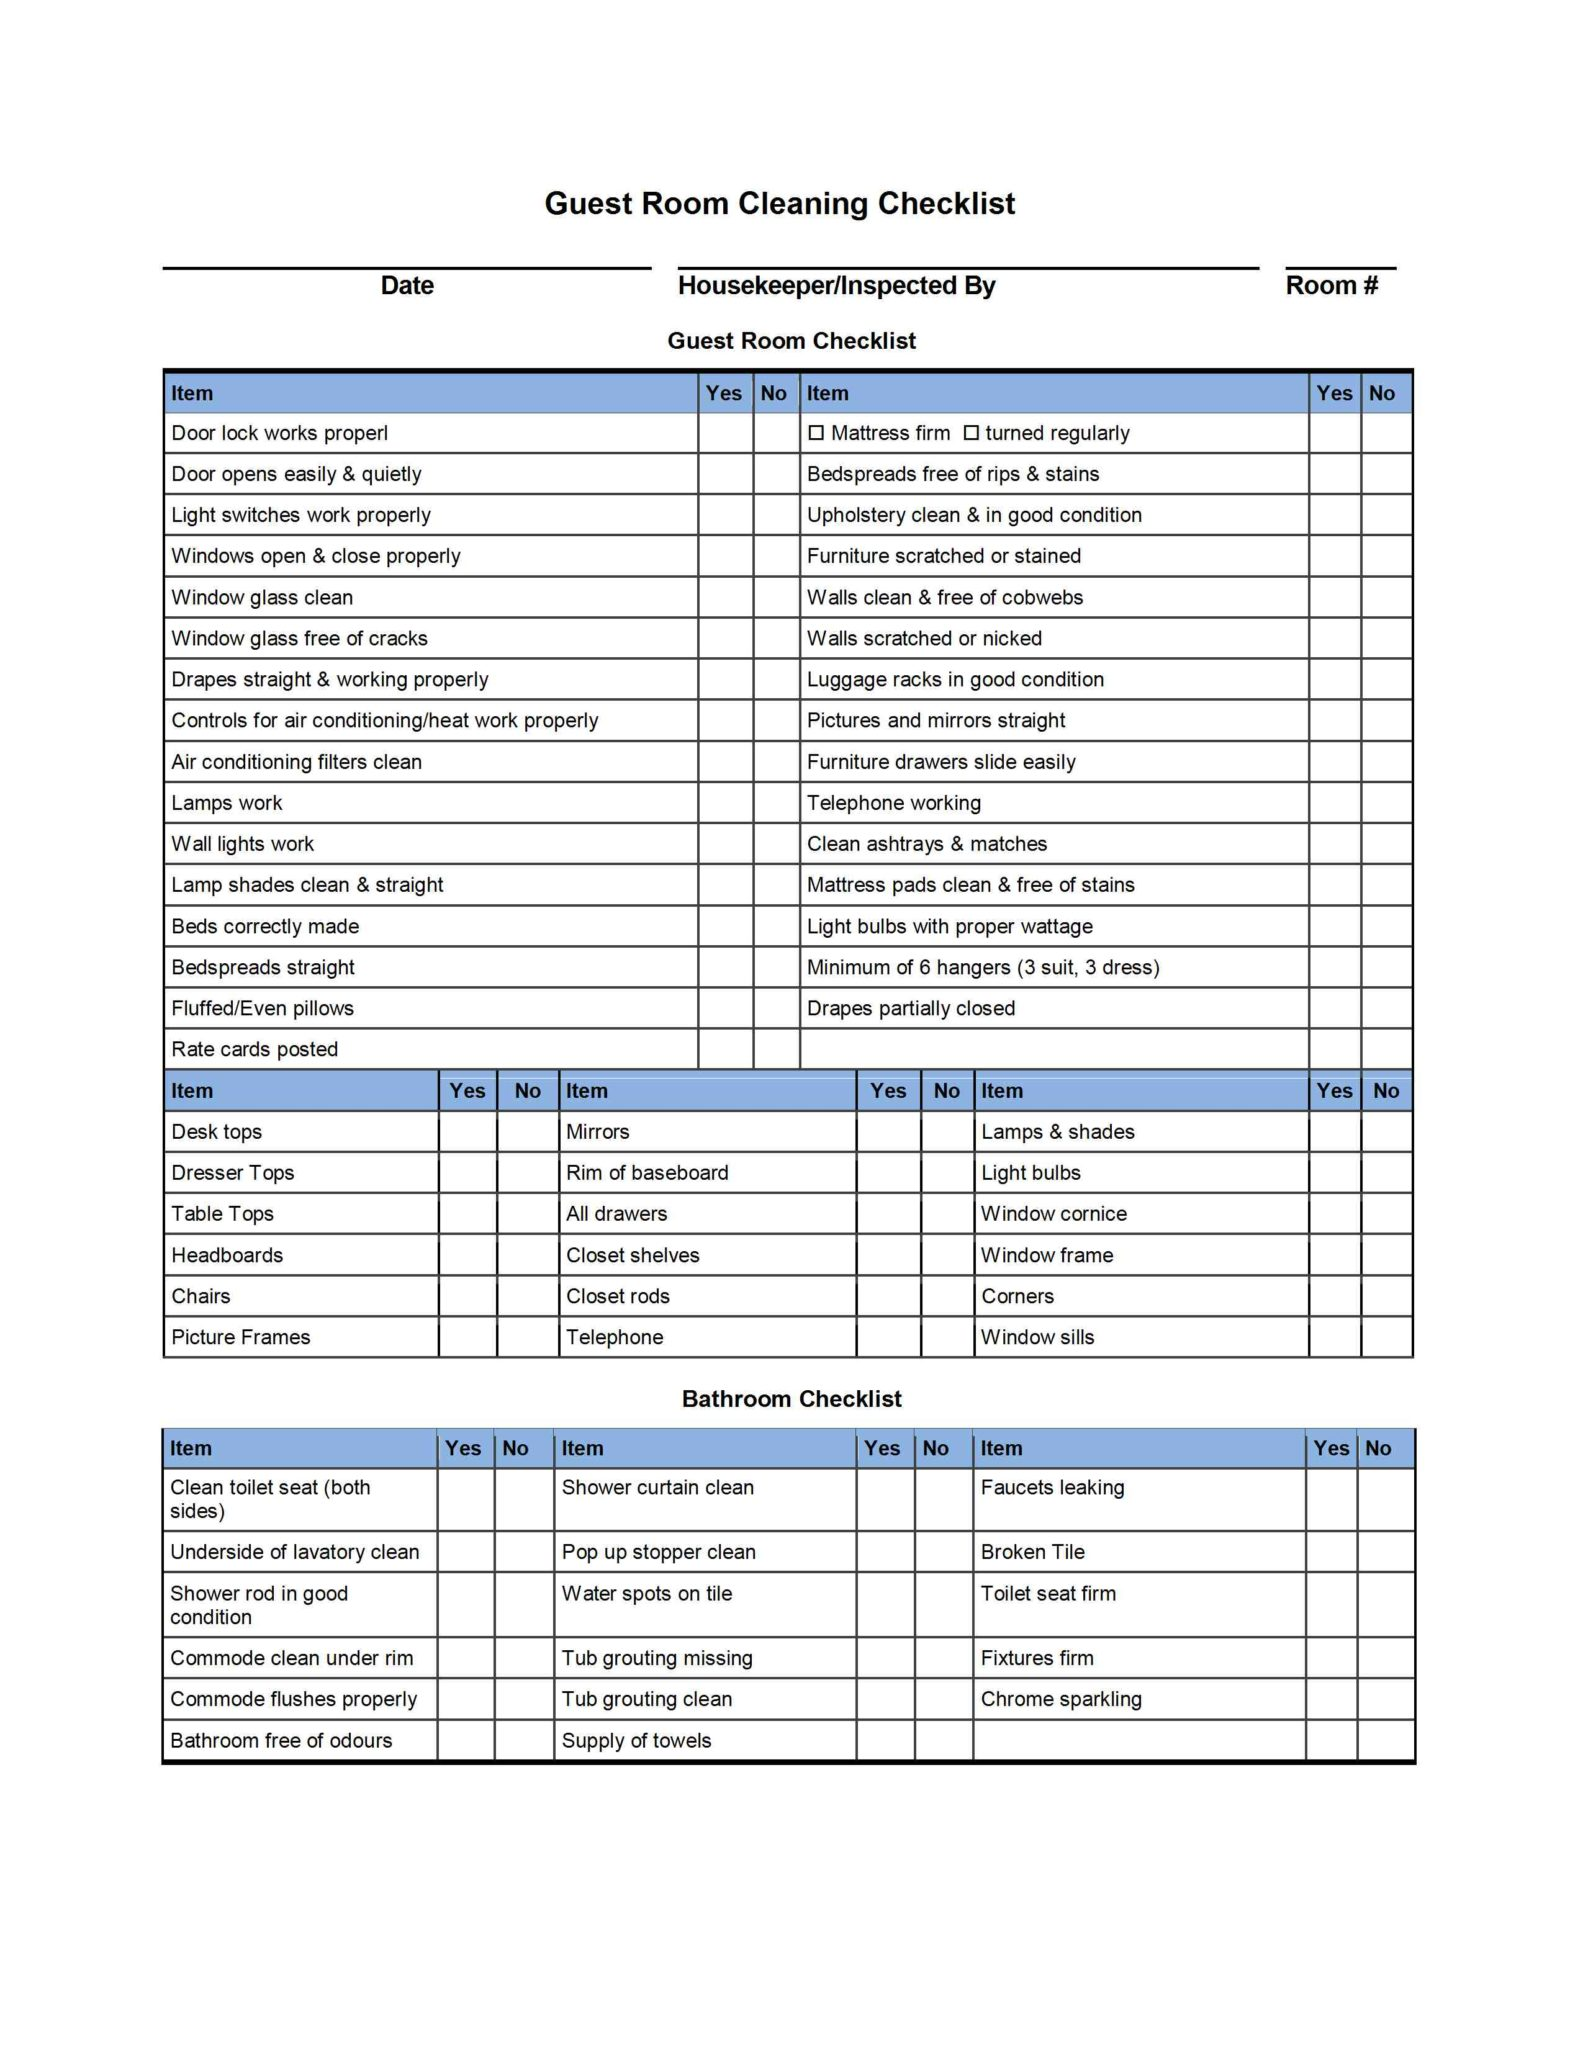 Hotel Inventory List Sample